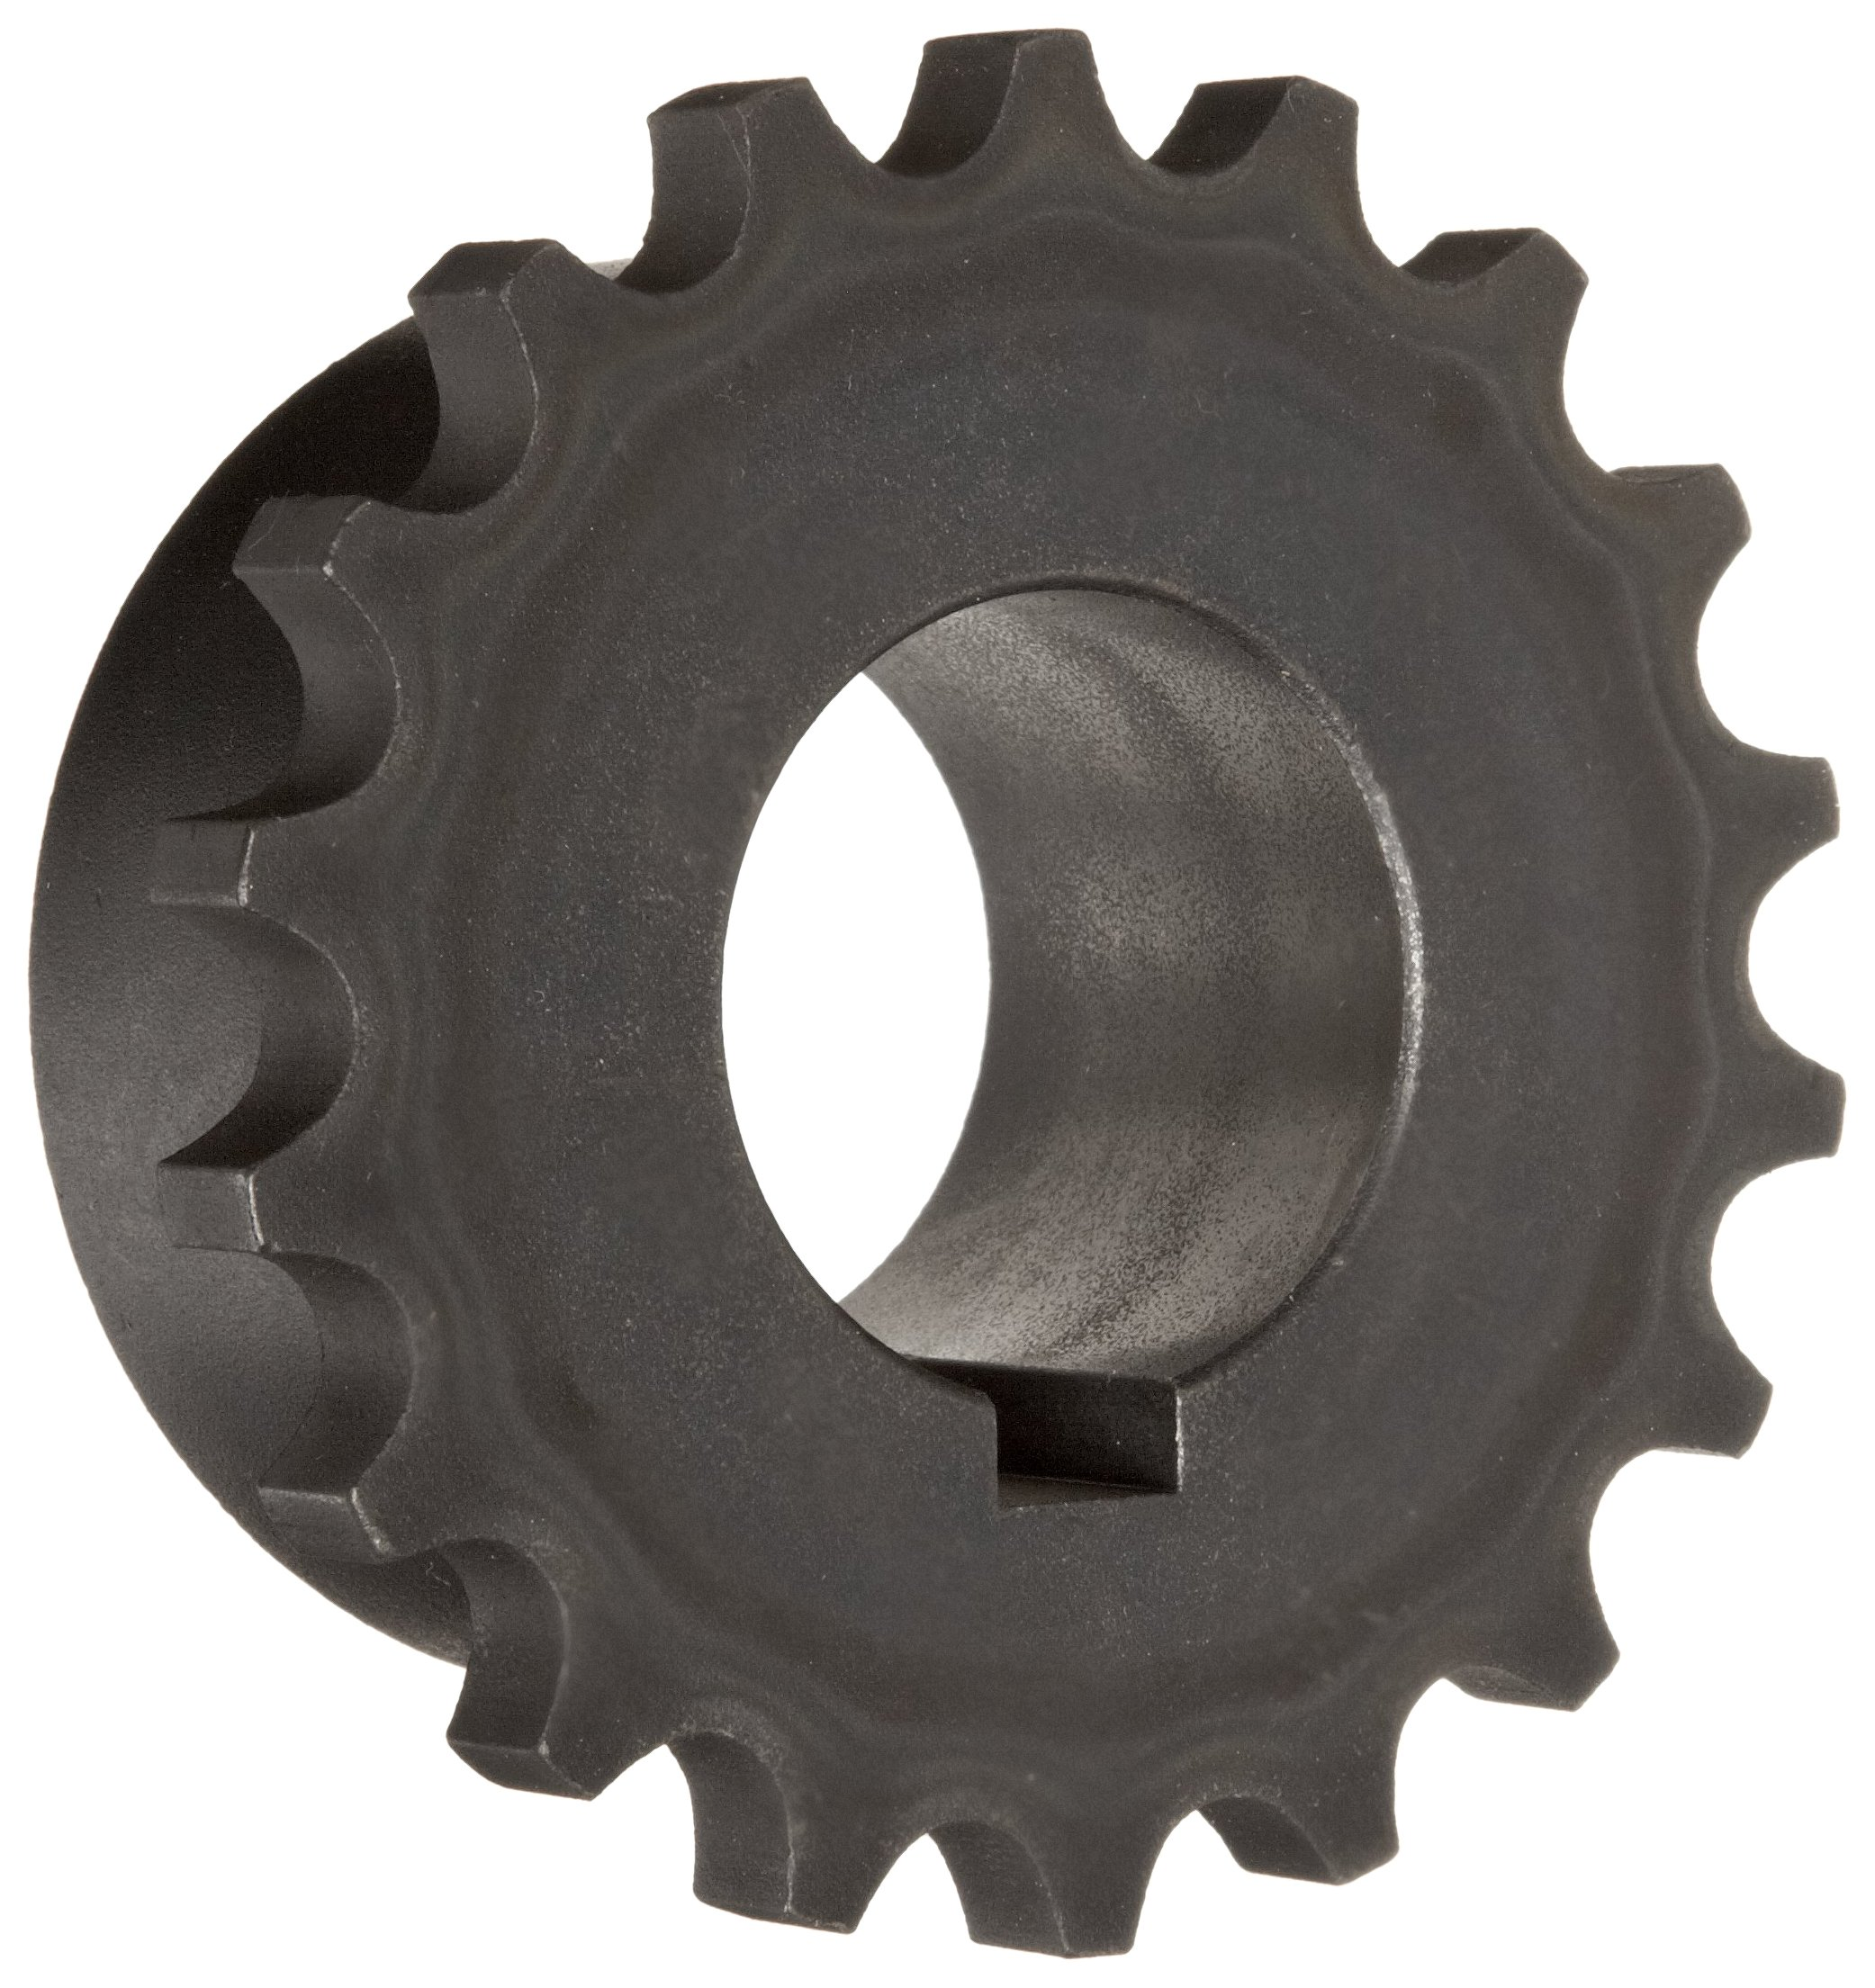 "Martin 5018 Roller Chain Coupling, Sintered Steel, Inch, 18 Teeth, 1 1/2"" Bore, 4 3/16"" OD, 1 11/16"" Length, 3600 rpm Max Rotational Speed, 3/8"" x 3/16"" Keyway"